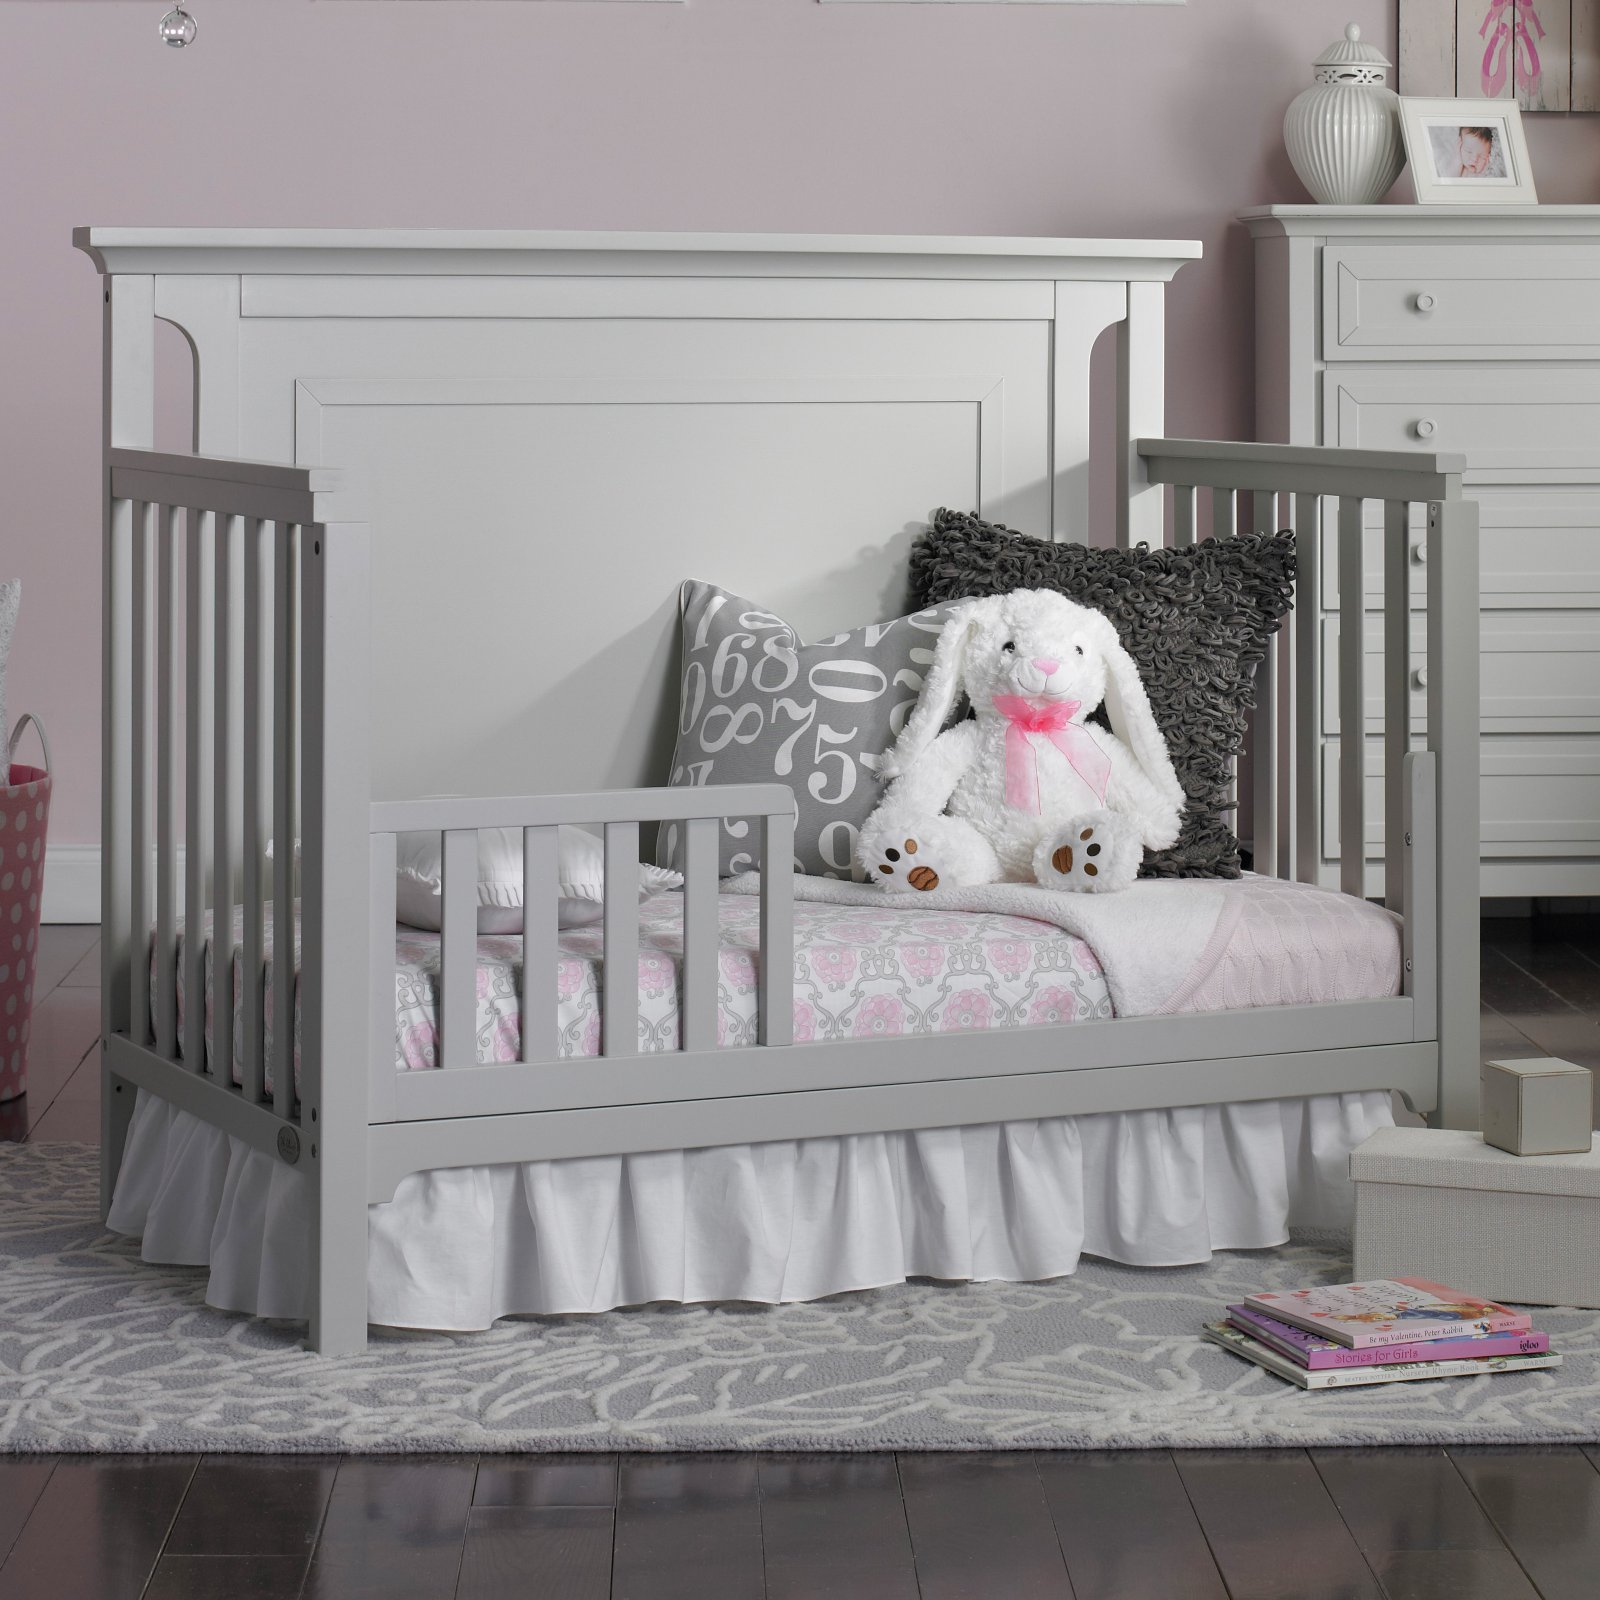 Ti Amo Carino Toddler Guard Rail